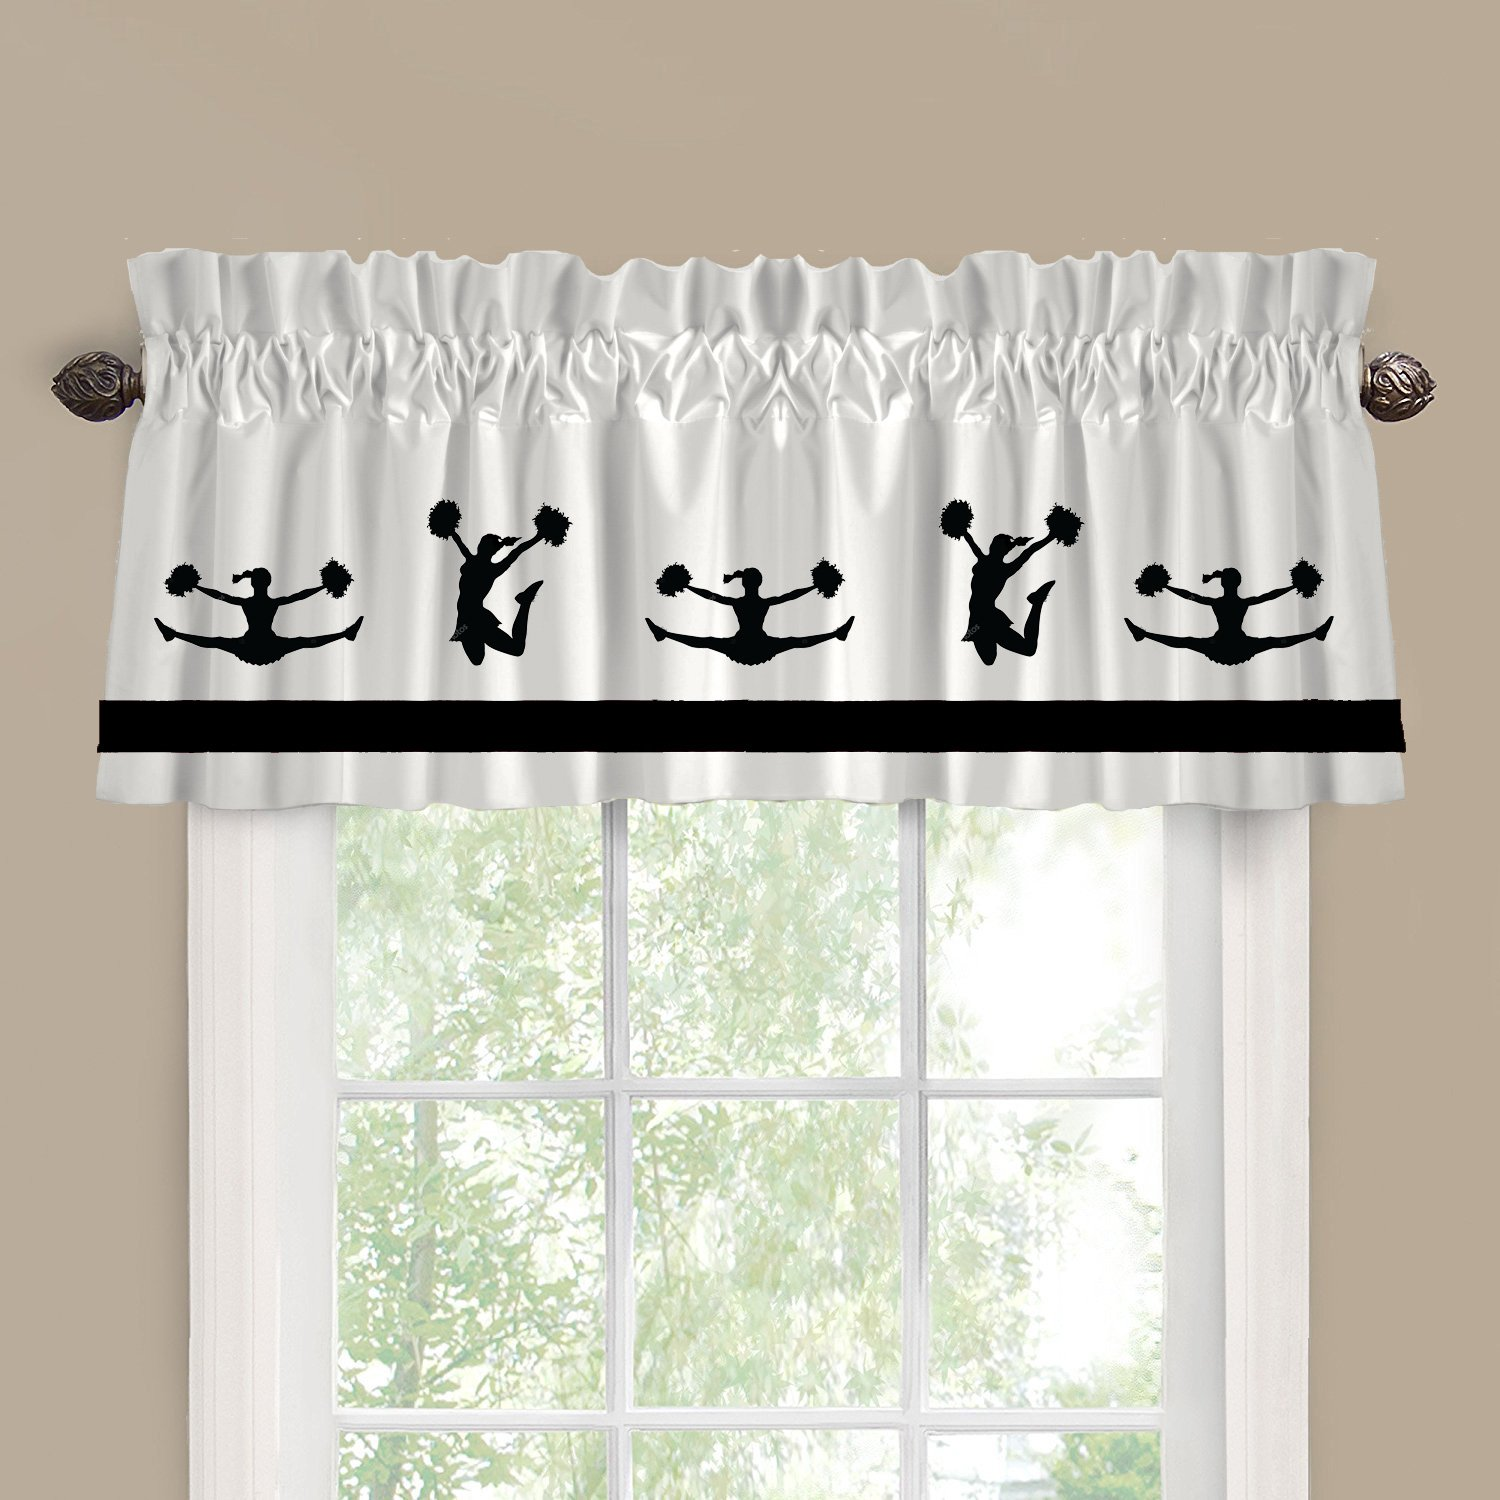 Cheerleader Cheerleading Dance School Window Valance / Window Treatment - In Your Choice of Colors - Custom Made